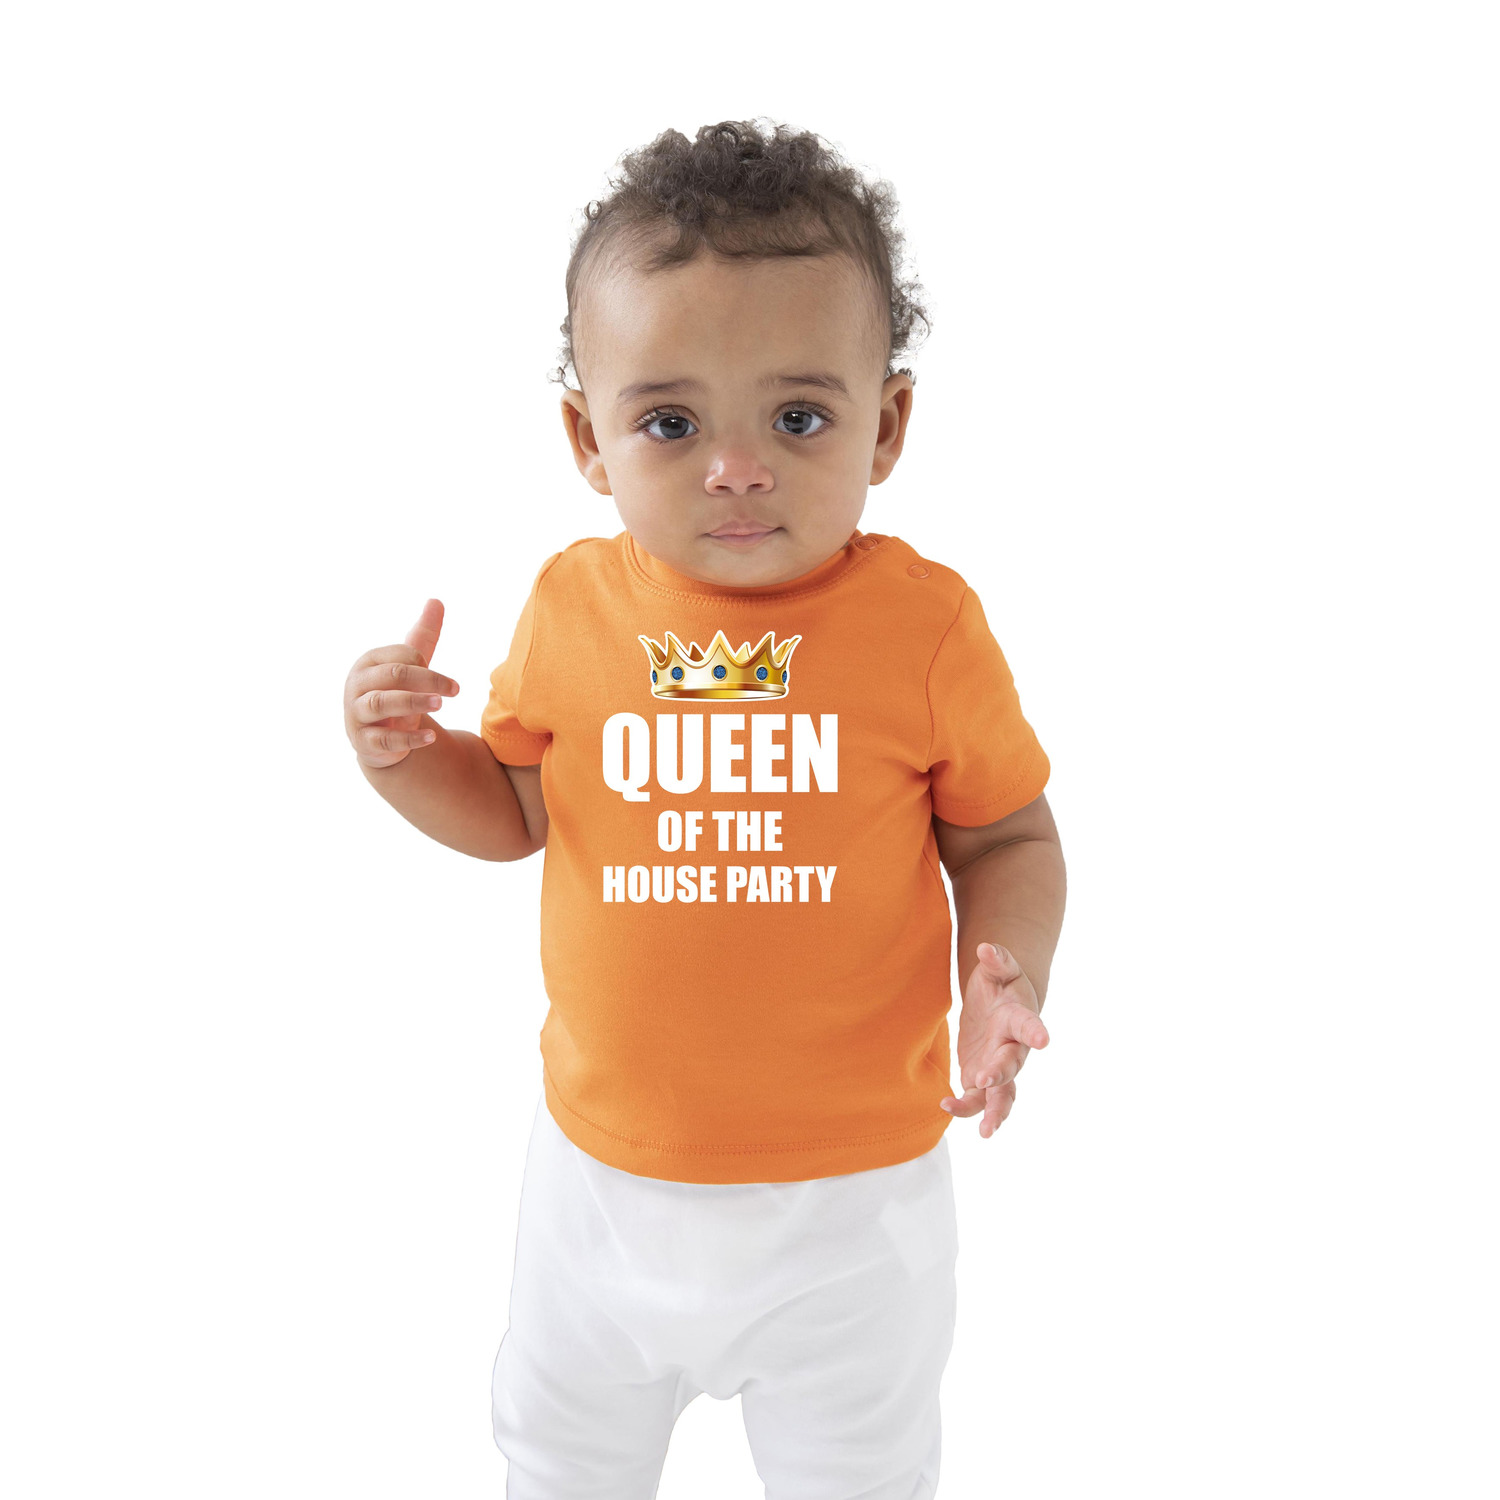 Queen of the house party t-shirt oranje Koningsdag baby-peuter voor meisjes